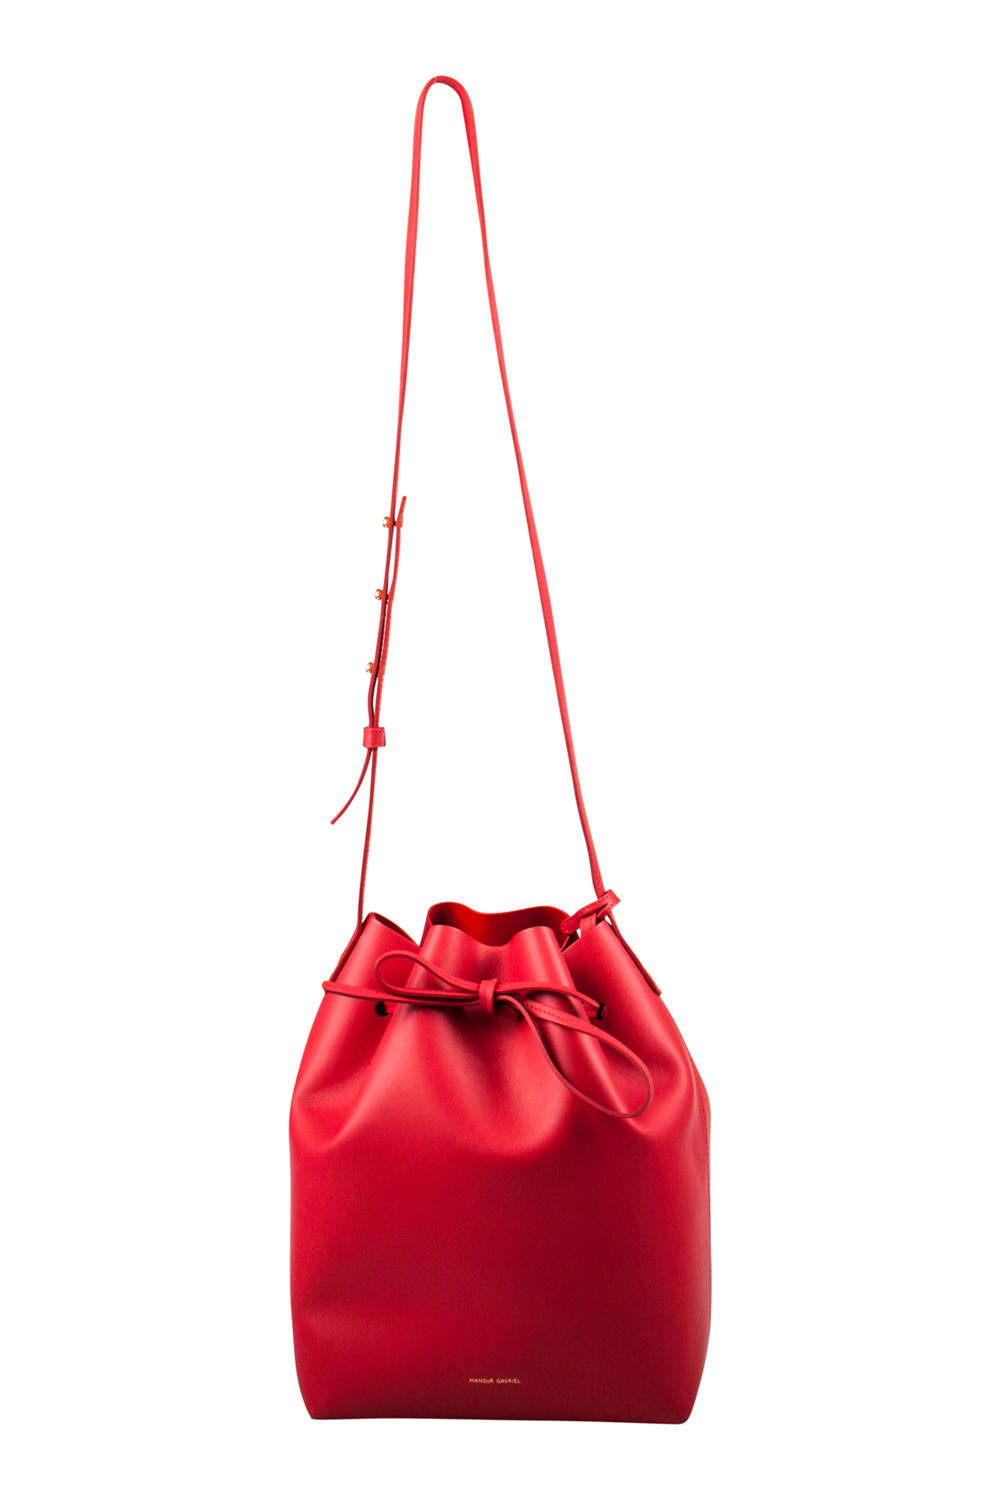 Mansur Gavriel Red Leather Bucket Bag